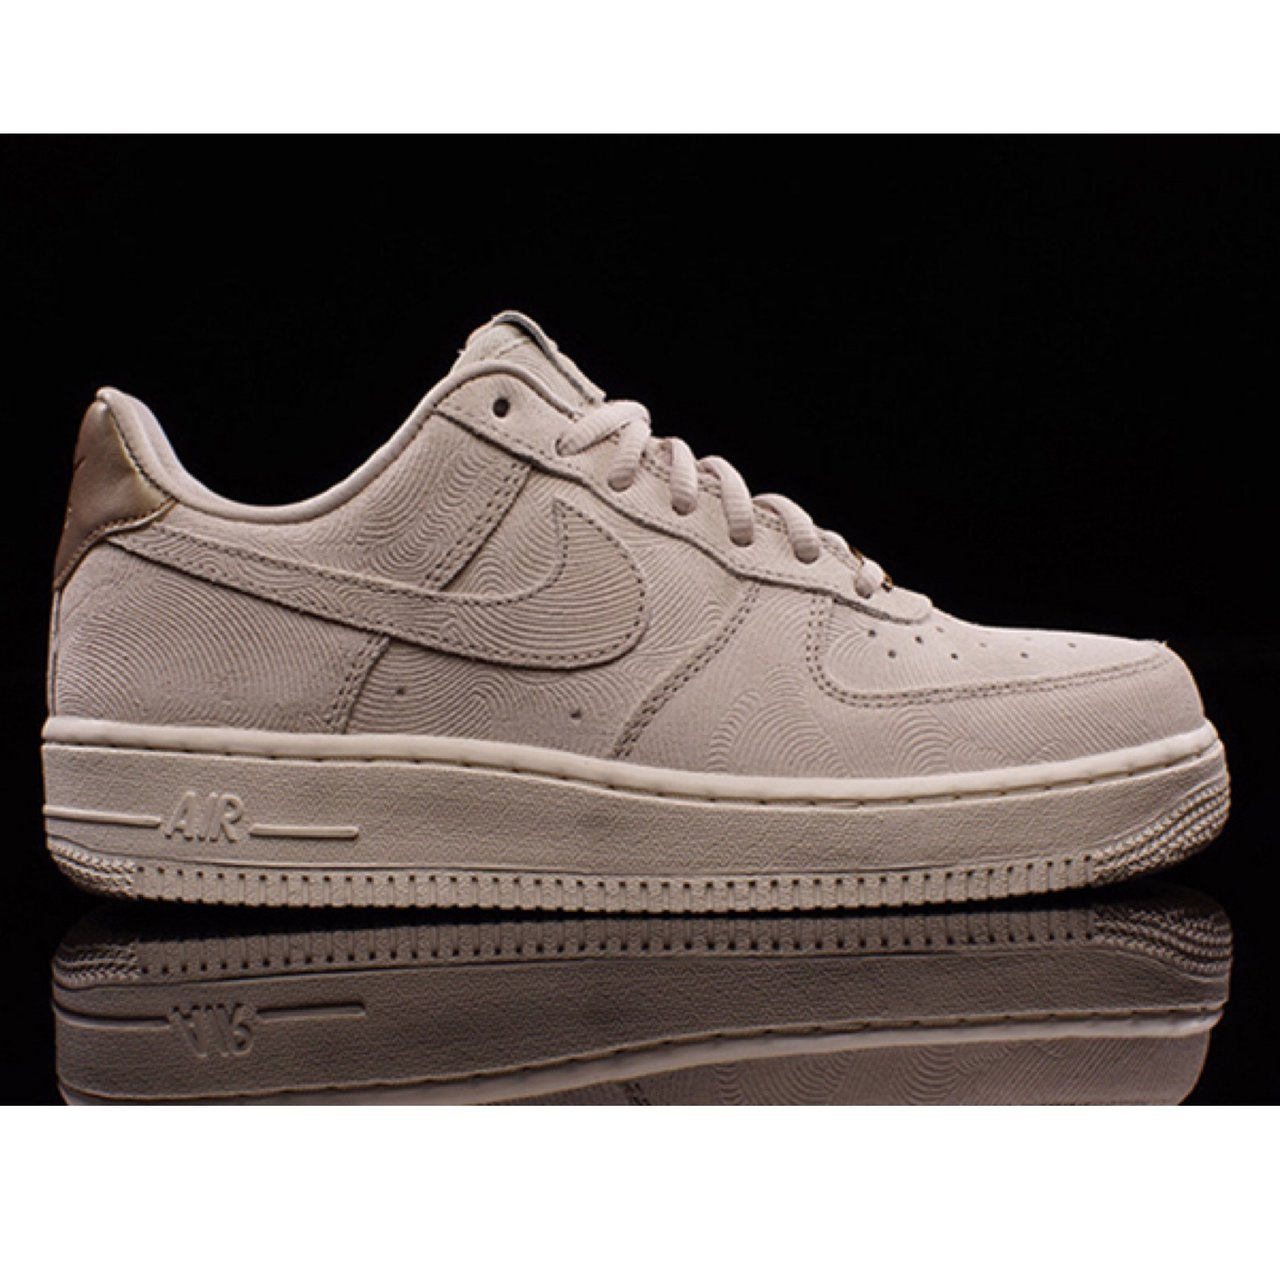 Nike Air Force 1 size uk 4 (us 6.5) women s Premium Suede in - Depop ff1b062007